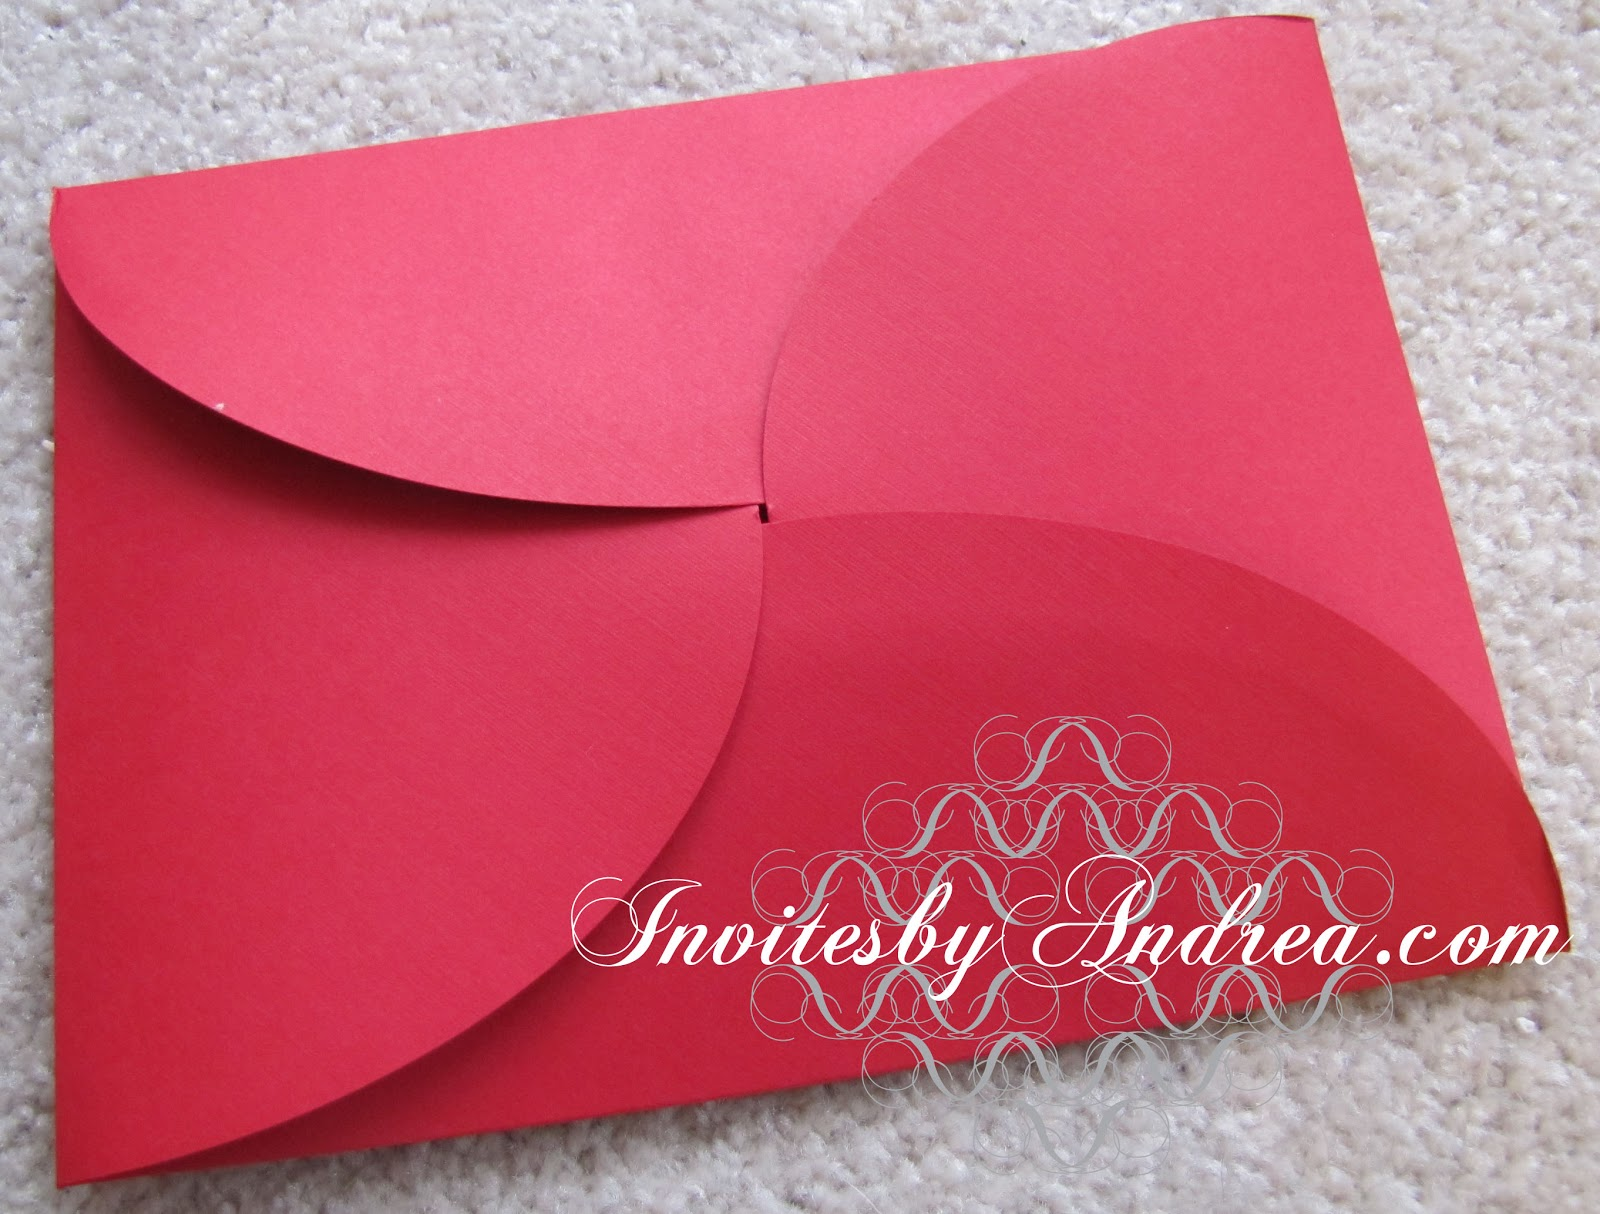 Scrapbook ideas romantic - The Red Roses That Line Each Flap Of The Inside Of The Petal Envelope Are Cut From A Piece Of Scrapbook Paper I Had I Haven T Found This Exact Scrapbook